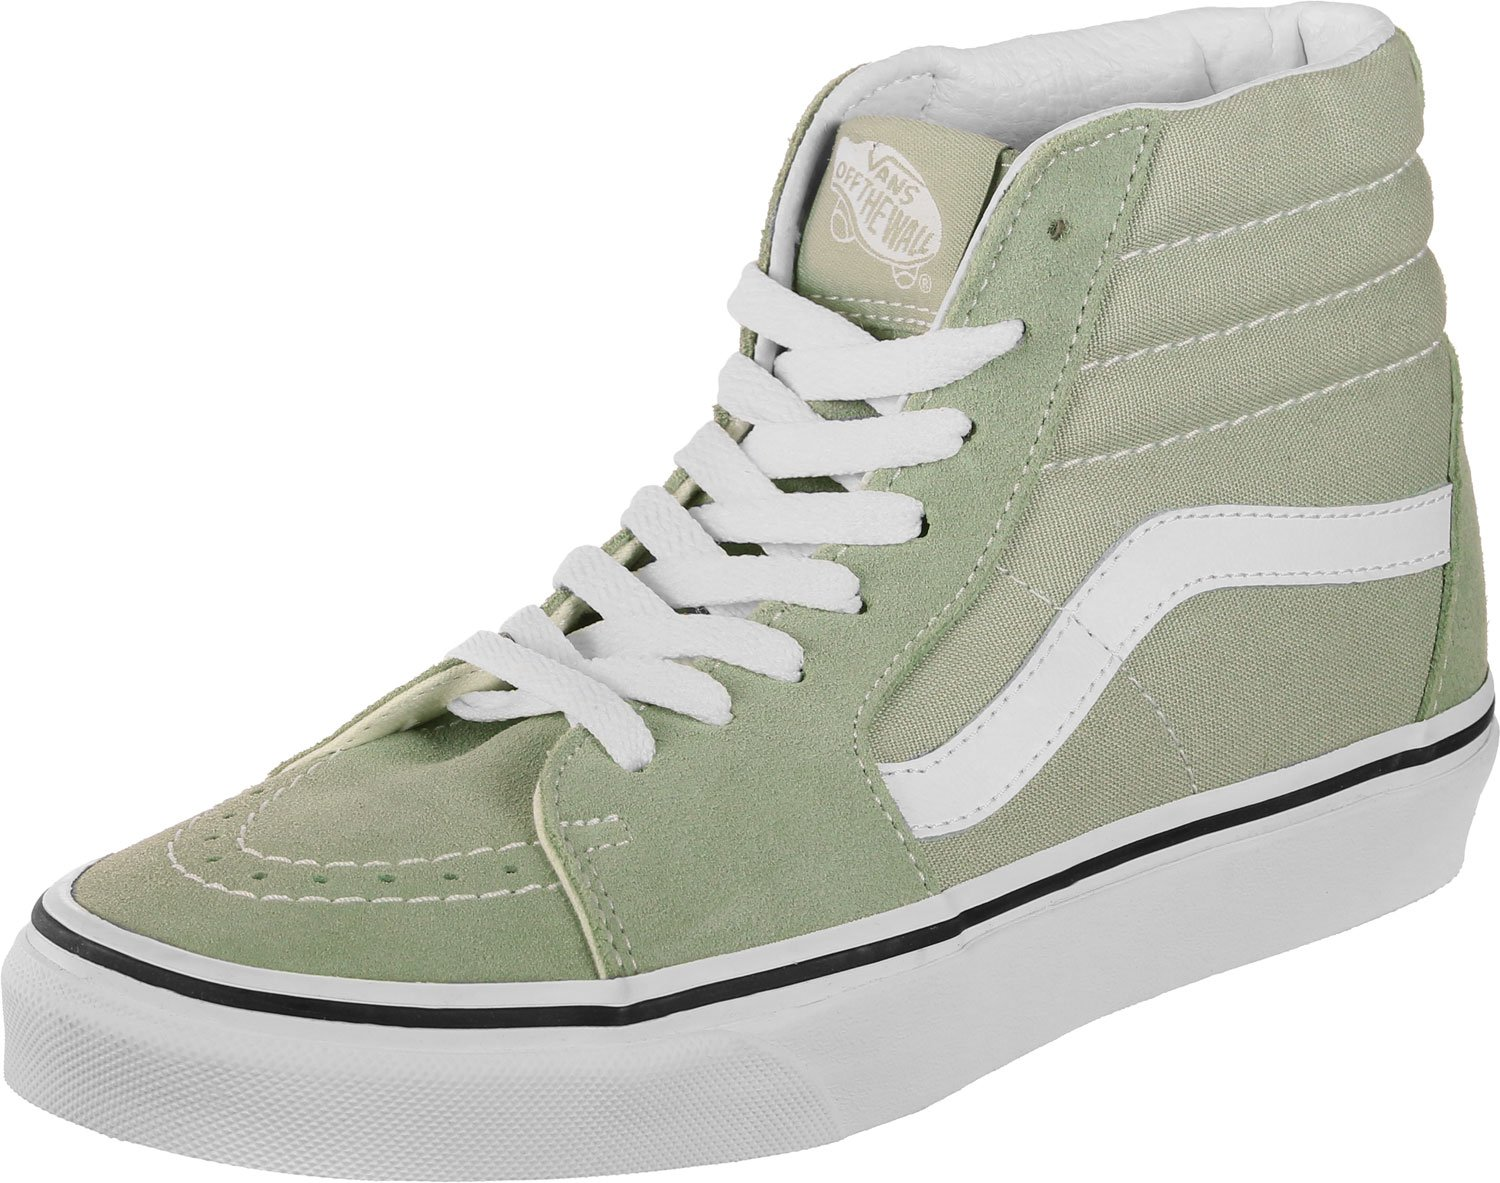 Vans Men's Sk8-Hi(Tm) Core Classics B078Y7CZF8 10.5 B(M) US Women / 9 D(M) US|Desert Sage True White